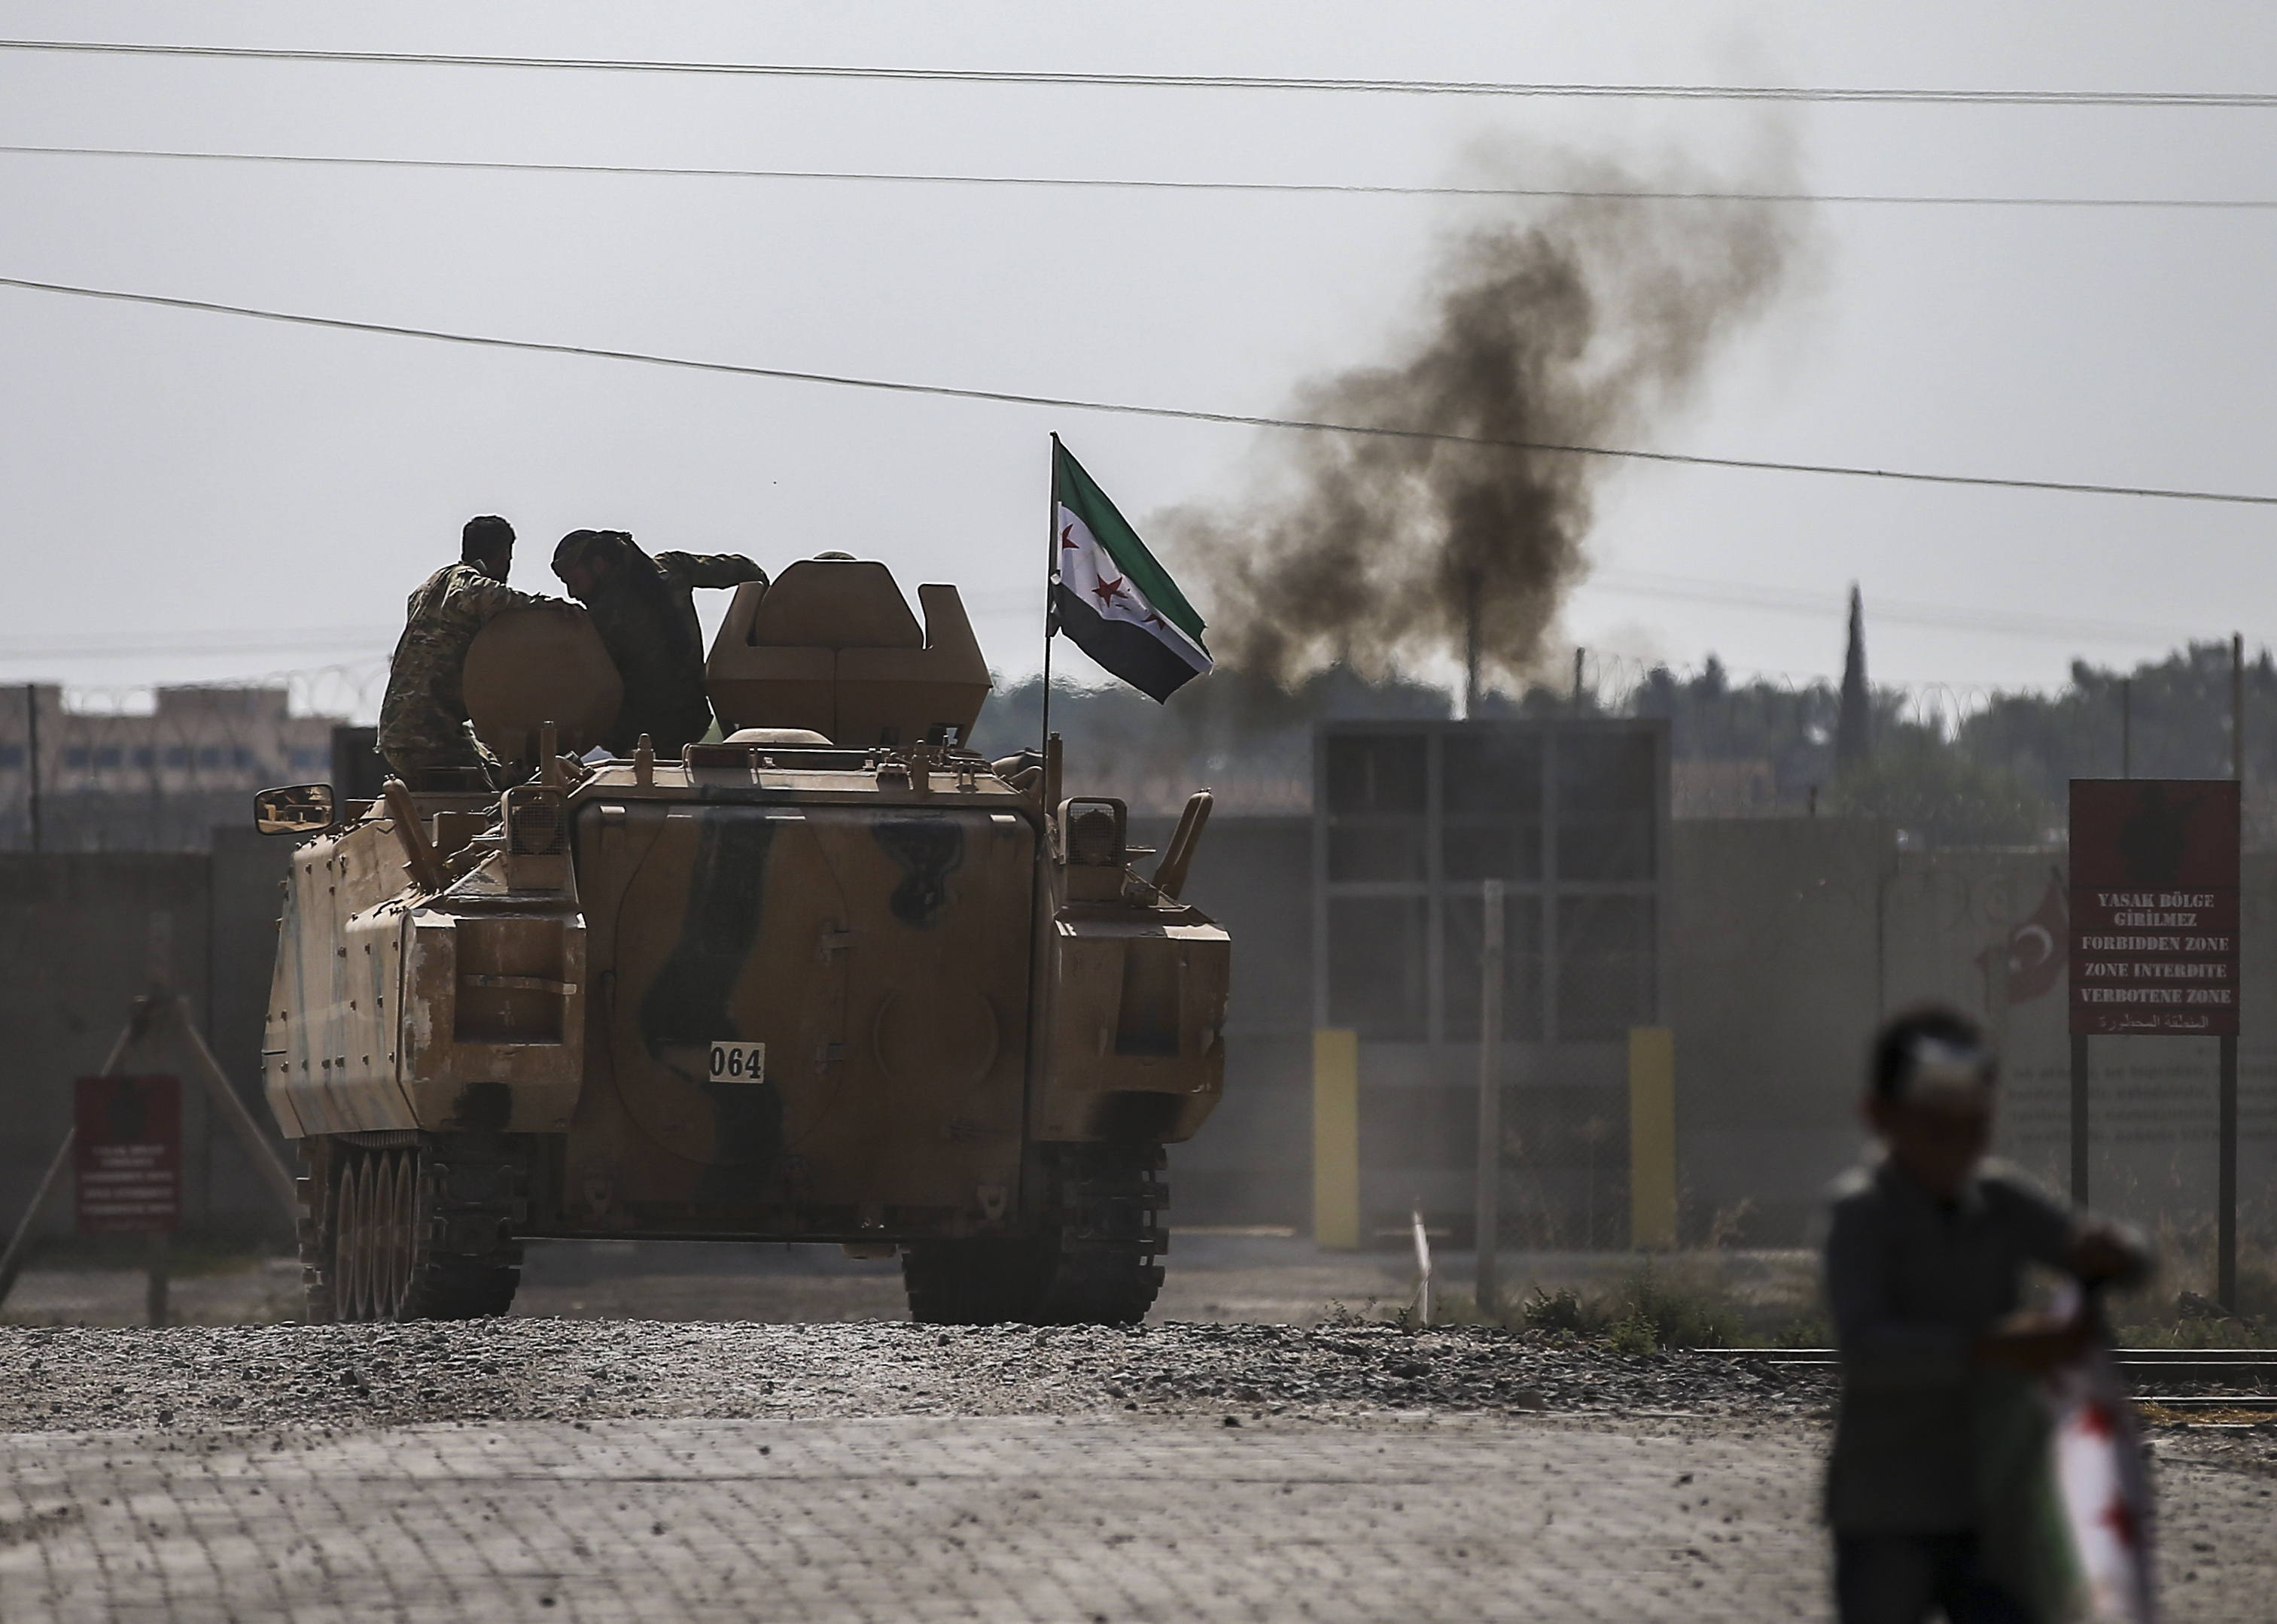 Turkish-backed Syrian opposition fighters on an armoured personnel carrier drive to cross the border into Syriaon Oct. 18, 2019. (Emrah Gurel/AP)